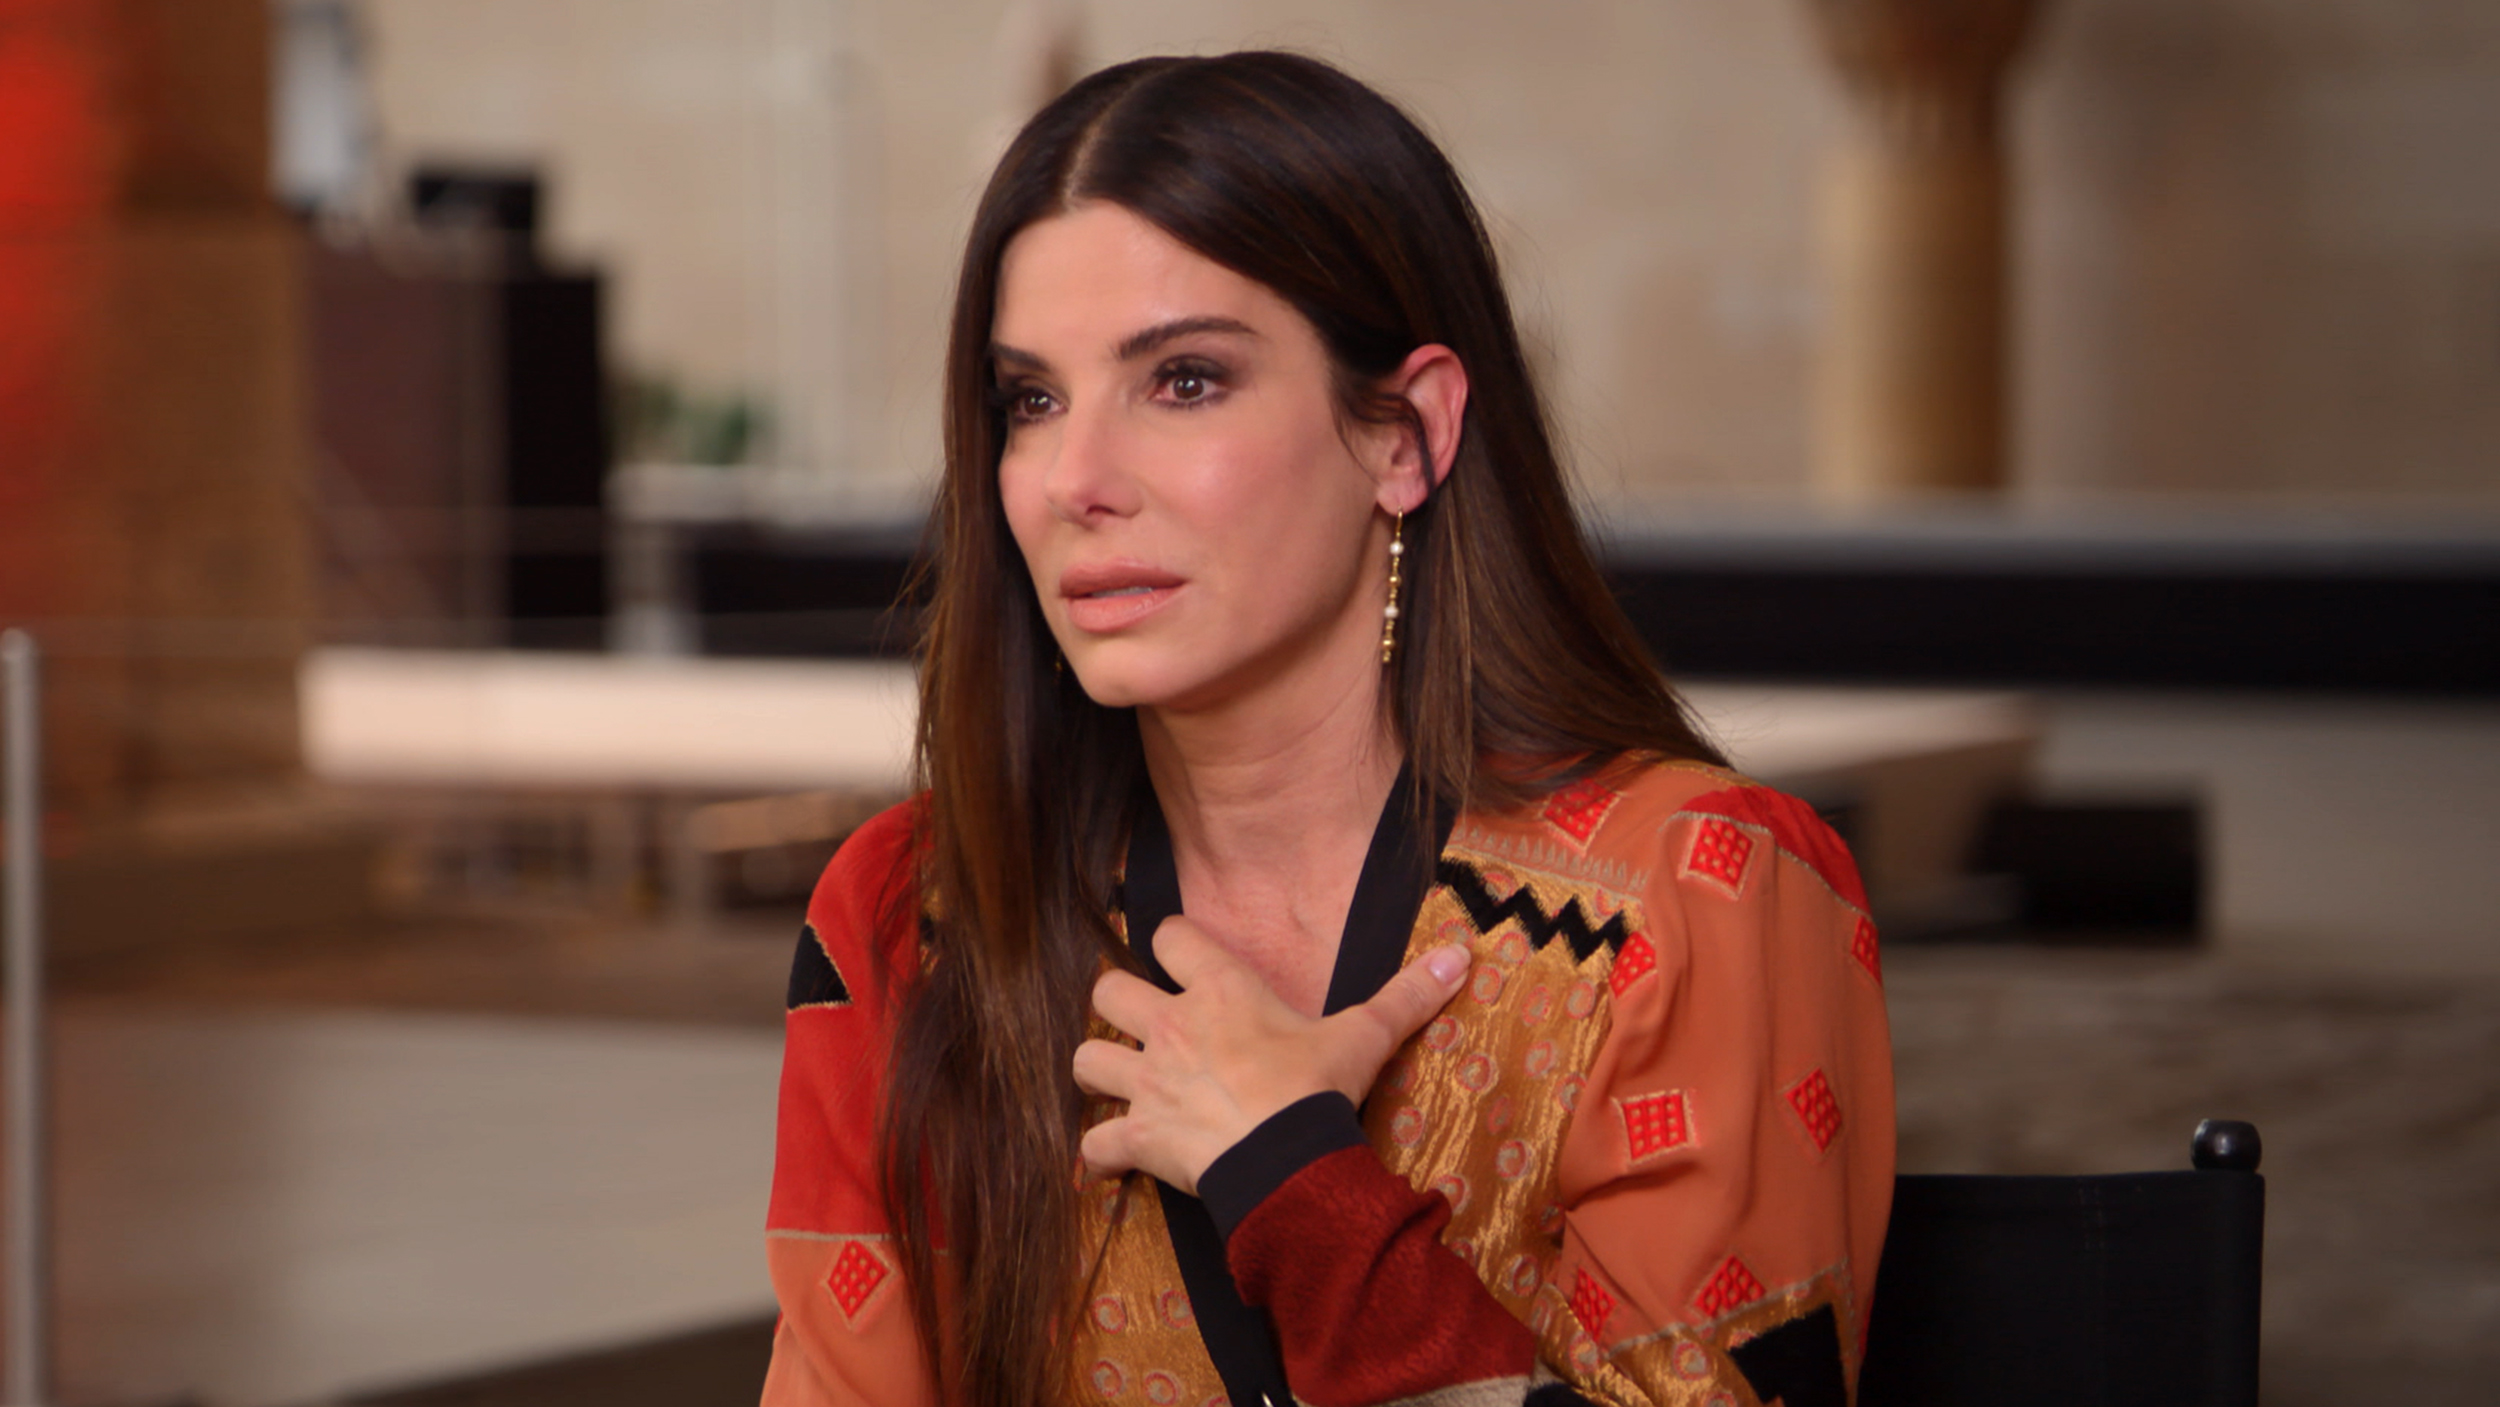 Sandra Bullock on her kids and growing her family through